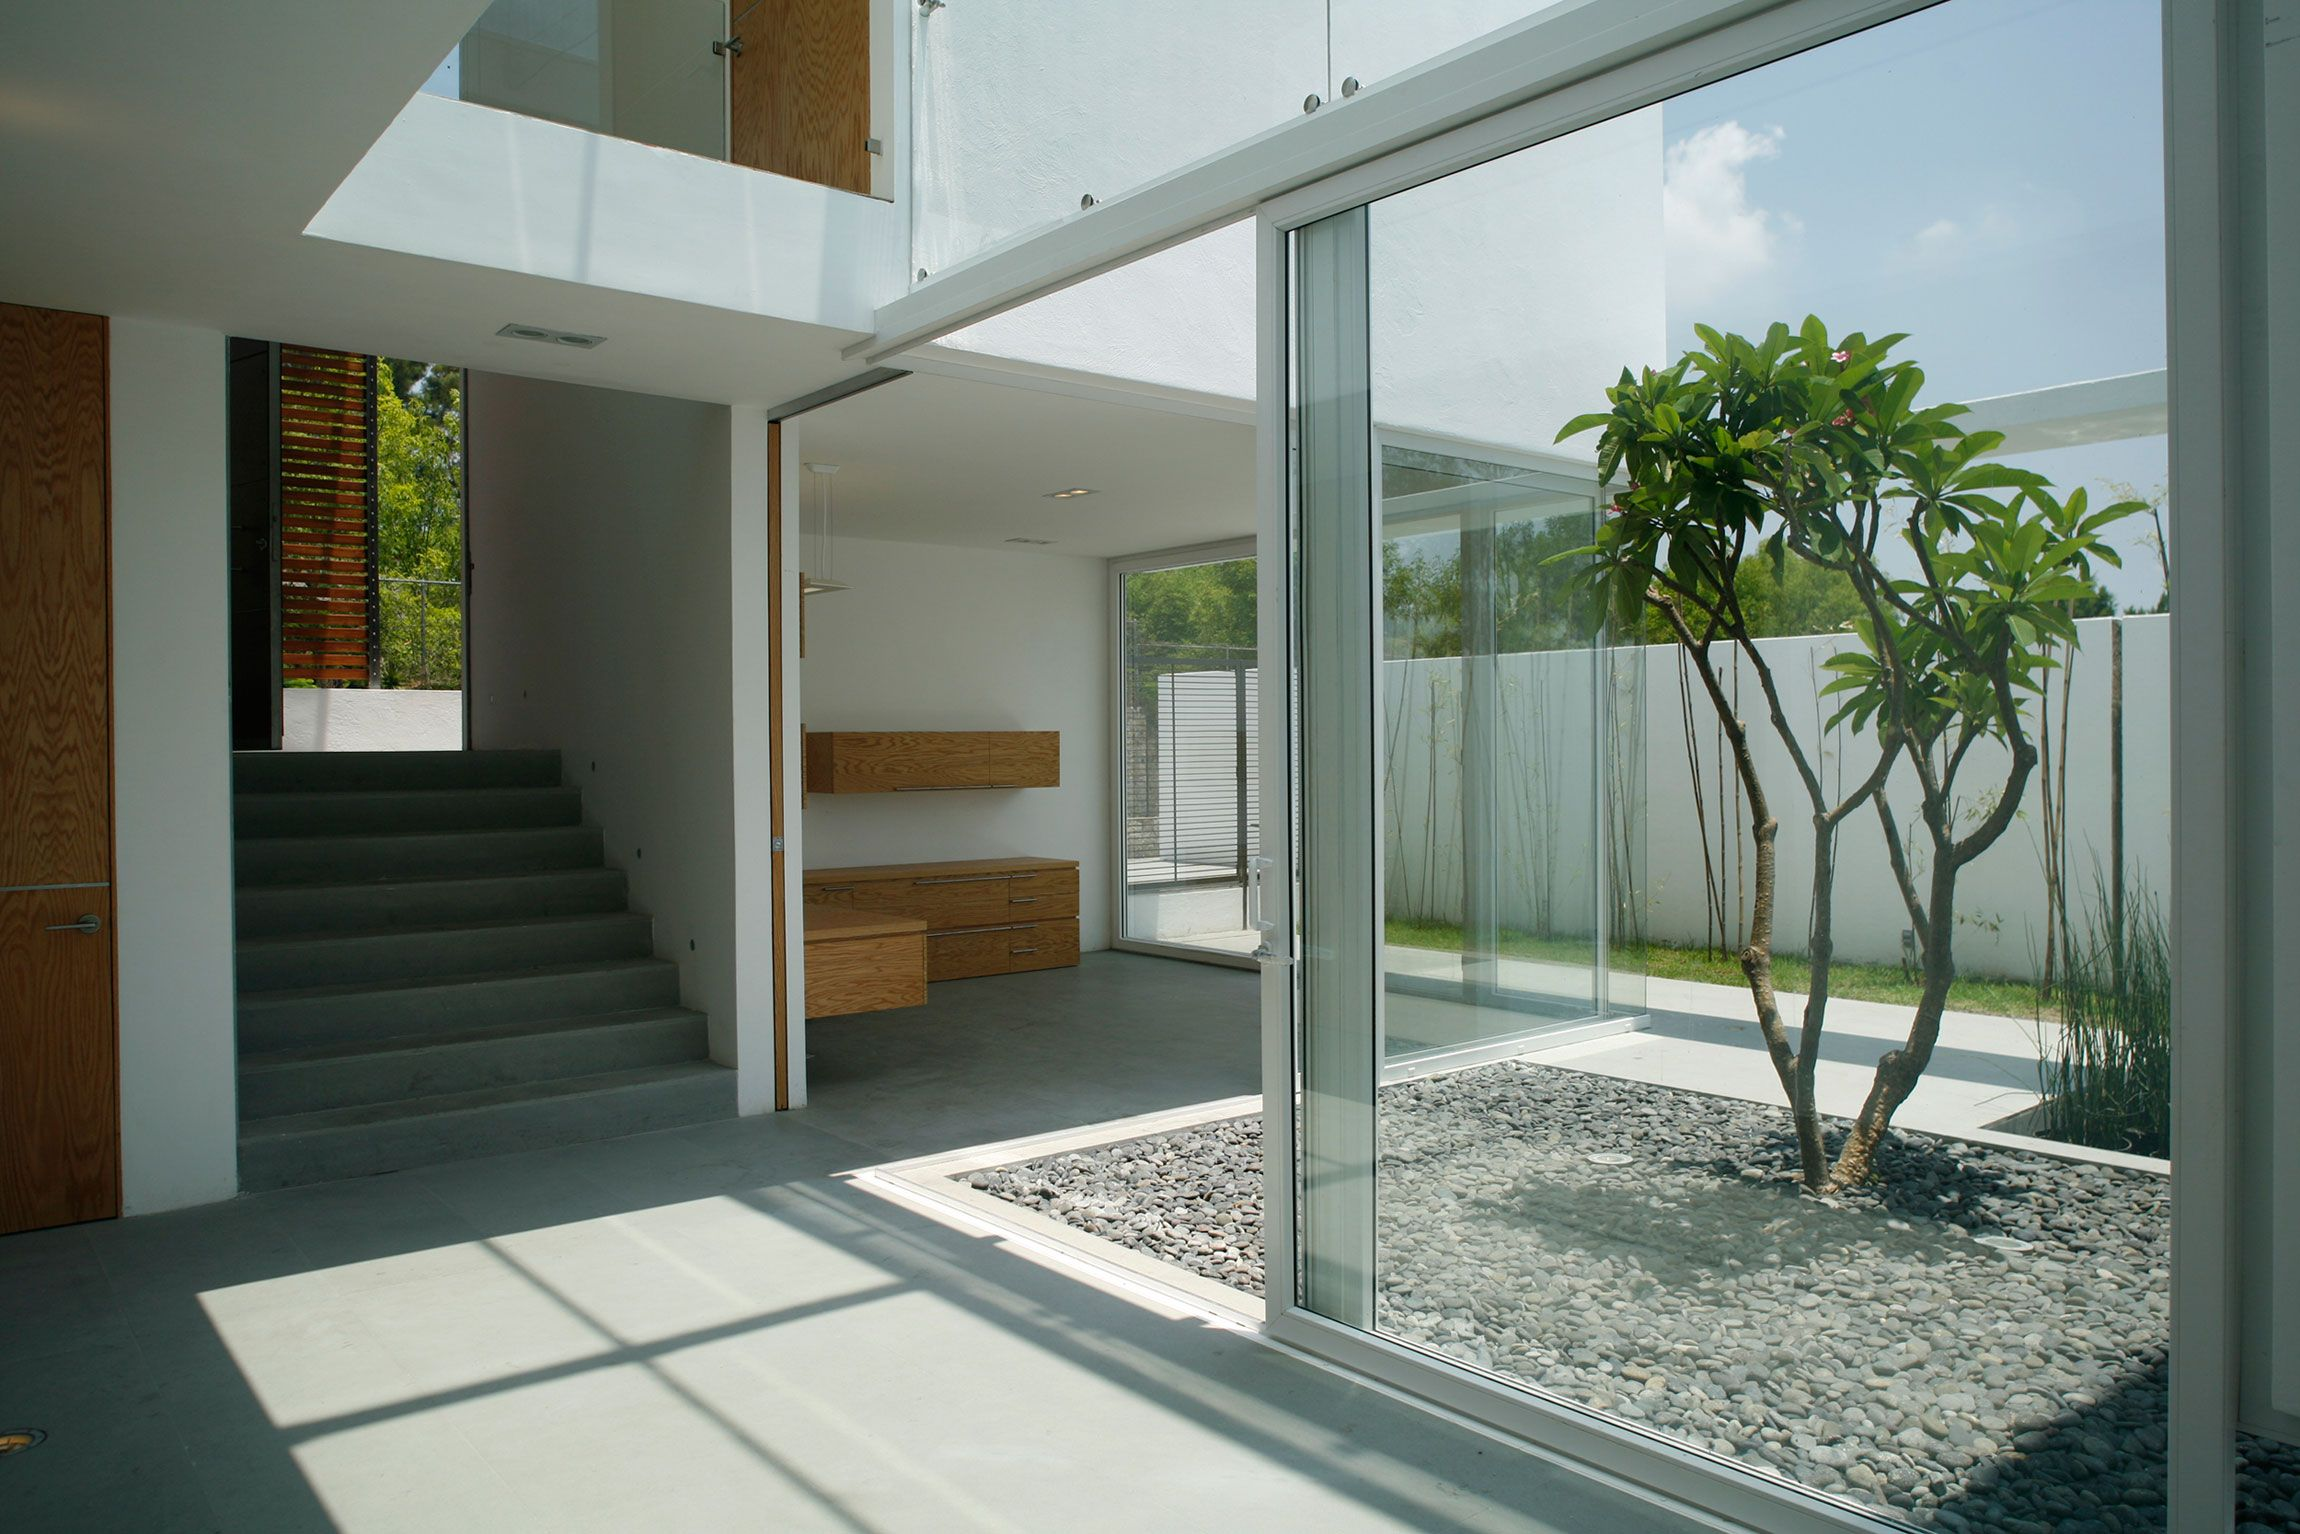 Architecture mesmerizing small courtyard modern minimalist for Glass house plans and designs